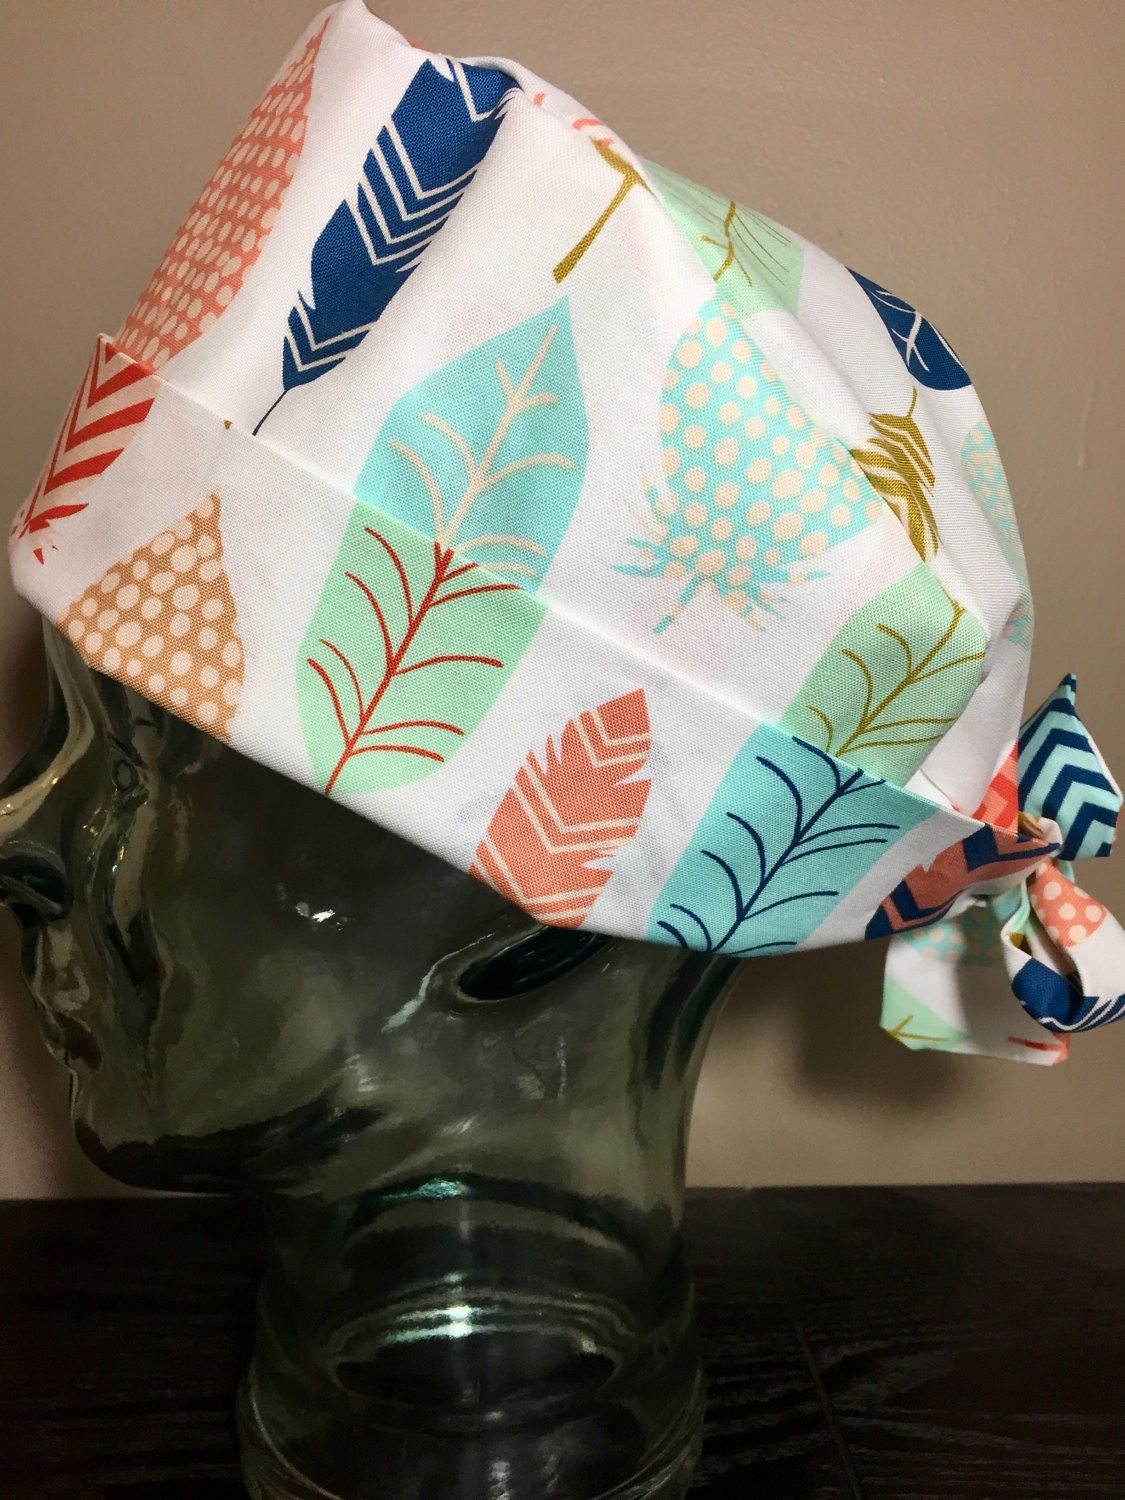 Chemotherapy Room Design: Blue, Coral & Mint Feather Surgical Scrub Hat, Women's